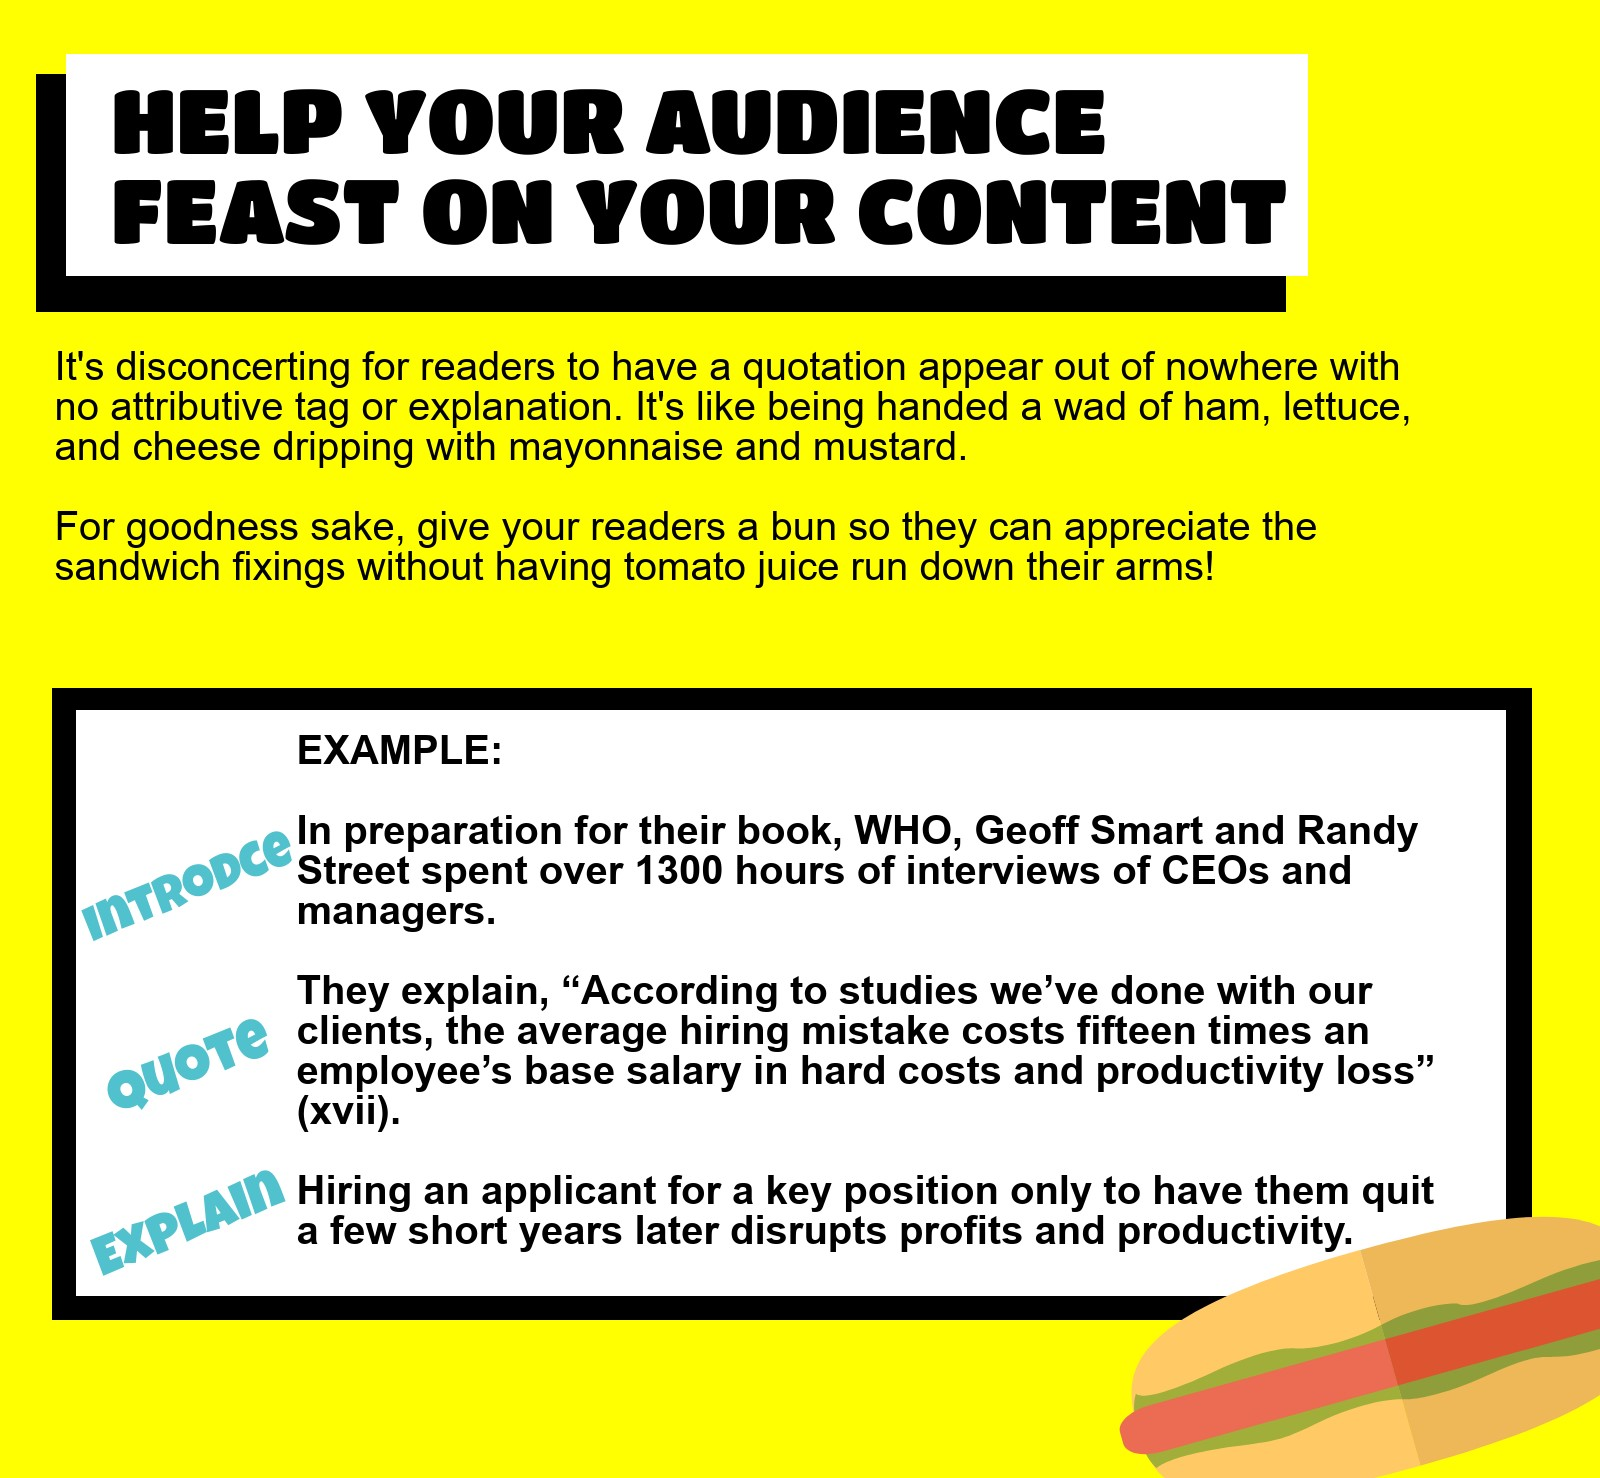 """A graphic reiterates: """"Help your audience feast on your content. It's disconcerting for readers to have a quotation appear out of nowhere with no attributive tag or explanation. It's like being handed a wad of ham, lettuce, and cheese dripping with mayonnaise and mustard. For goodness sake, give your readers a bun so they can appreciate the sandwich fixings without having tomato juice run down their arms! Example: INTRODUCE In preparation for their book, Who, Geoff Smart and Randy Street spent over 1300 hours of interviews of CEOs and managers. QUOTE They explain, 'According to studies we've done with our clients, the average hiring mistake costs fifteen times an employee's base salary in hard costs and productivity loss.' EXPLAIN Hiring an applicant for a key position only to have them quit a few short years later disrupts profits and productivity."""""""